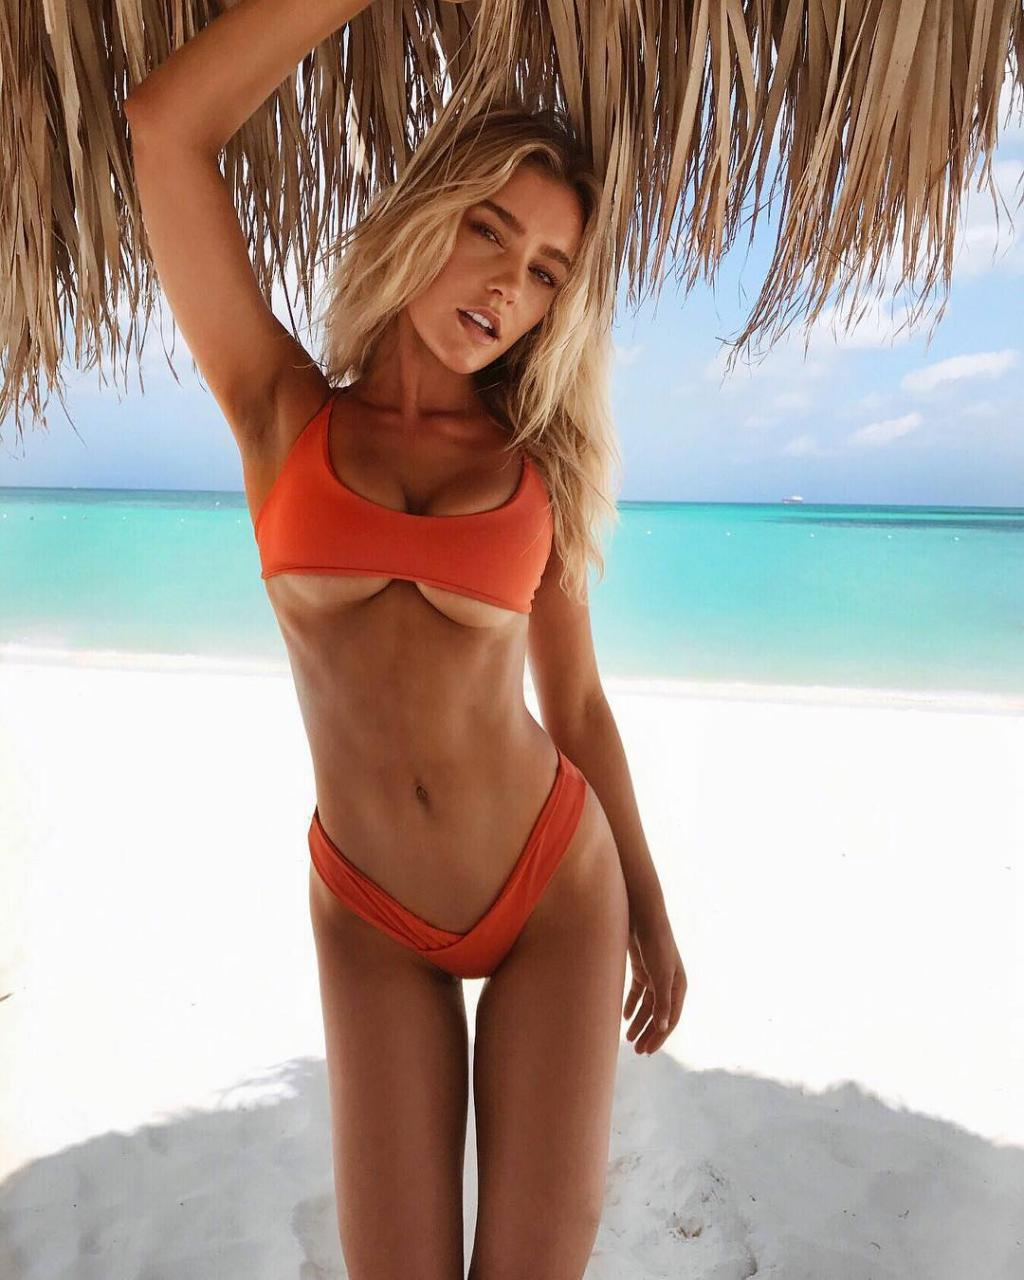 Georgia Mae - in Tiny Orange Bikini on Beach by crenk